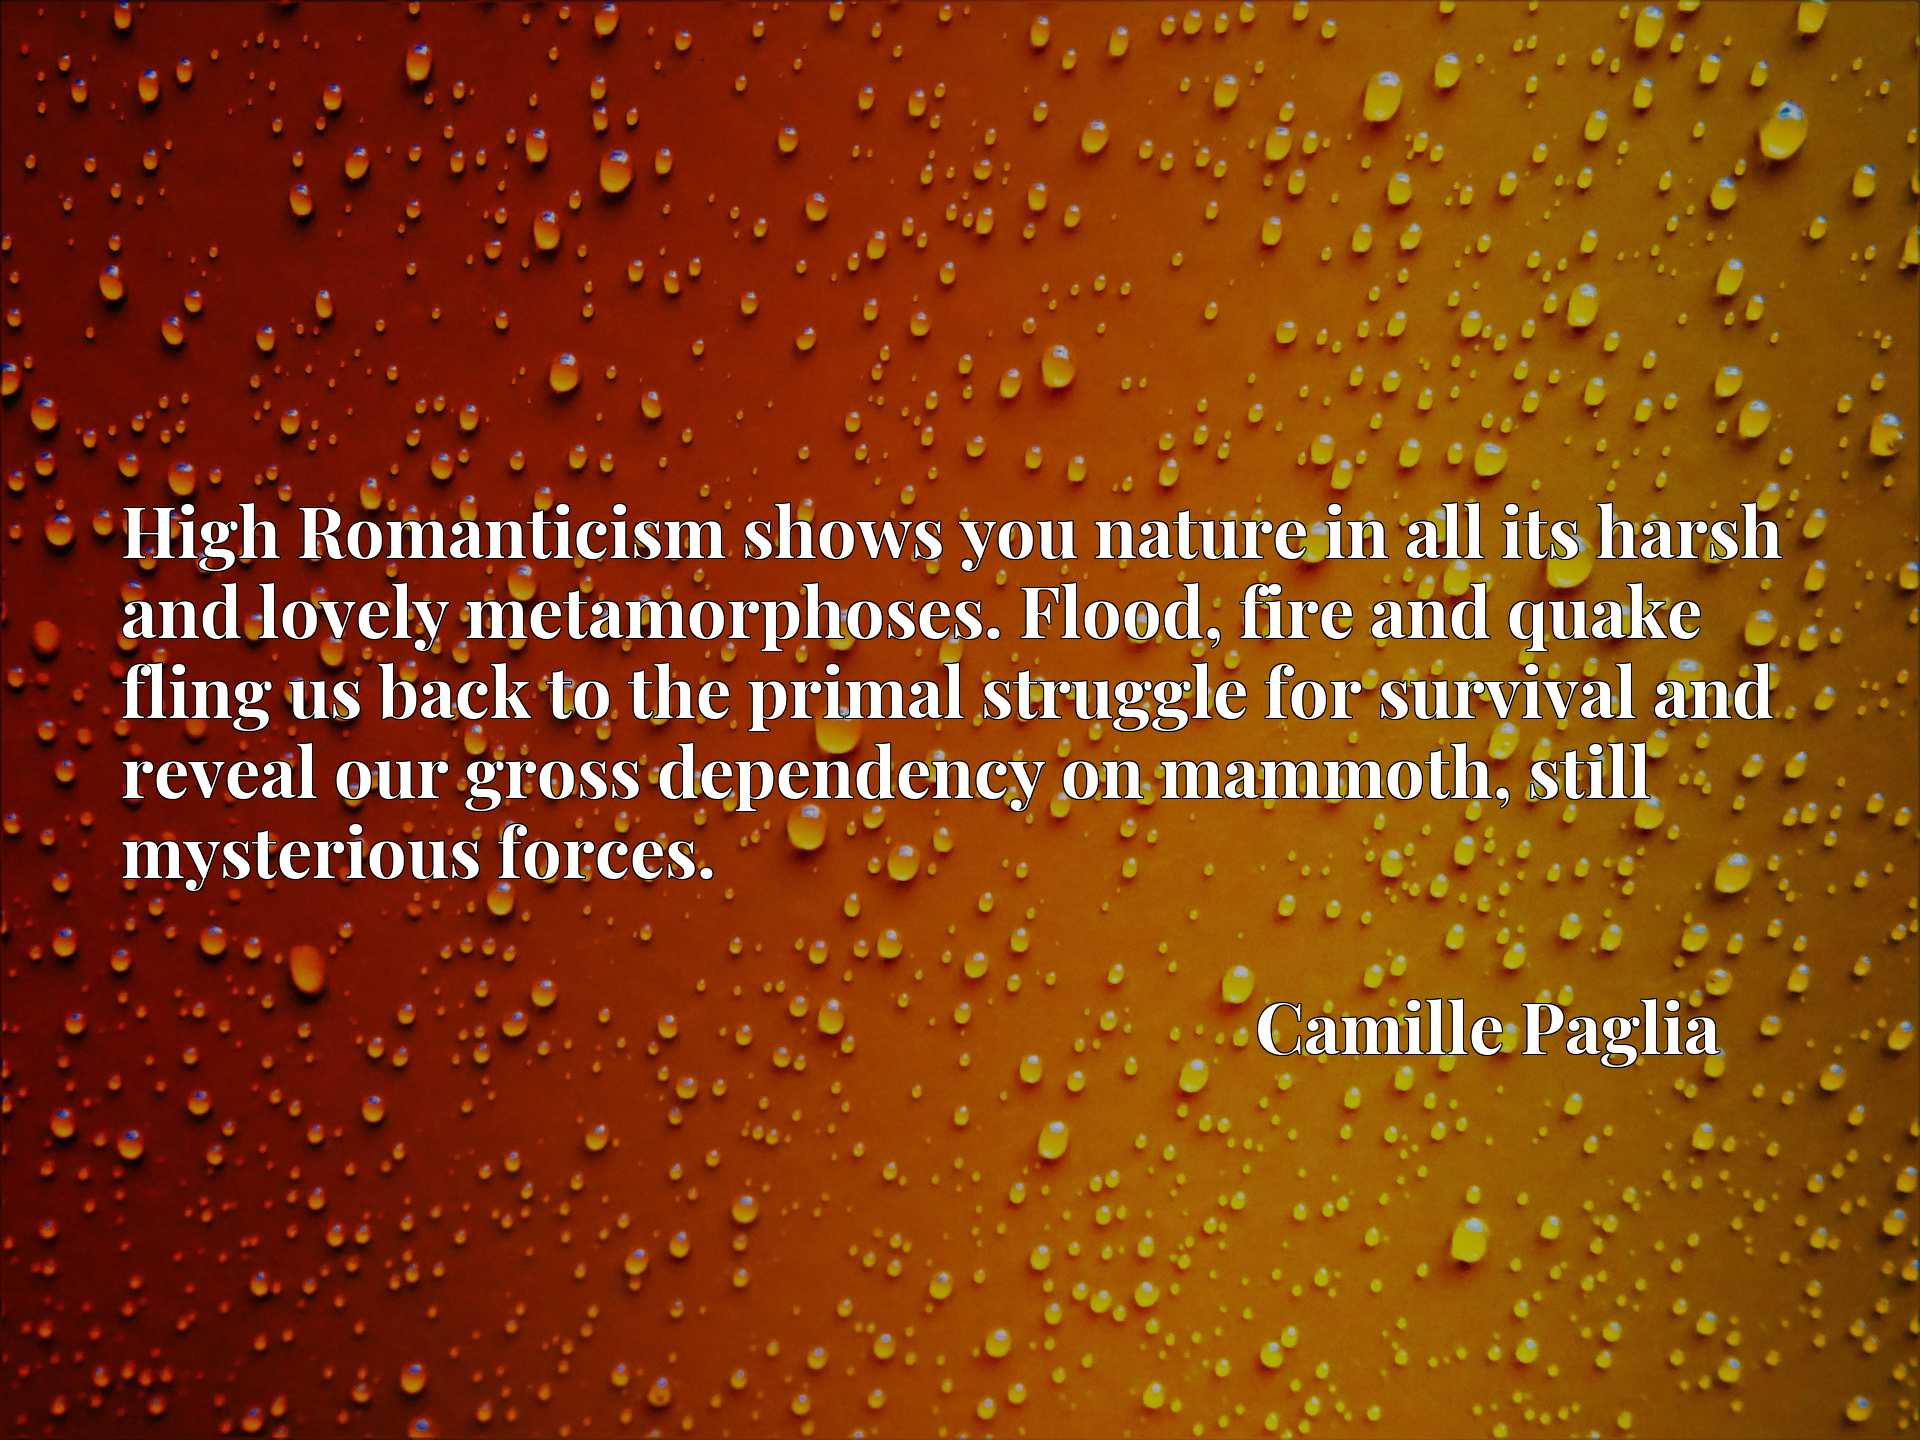 Quote Picture :High Romanticism shows you nature in all its harsh and lovely metamorphoses. Flood, fire and quake fling us back to the primal struggle for survival and reveal our gross dependency on mammoth, still mysterious forces.